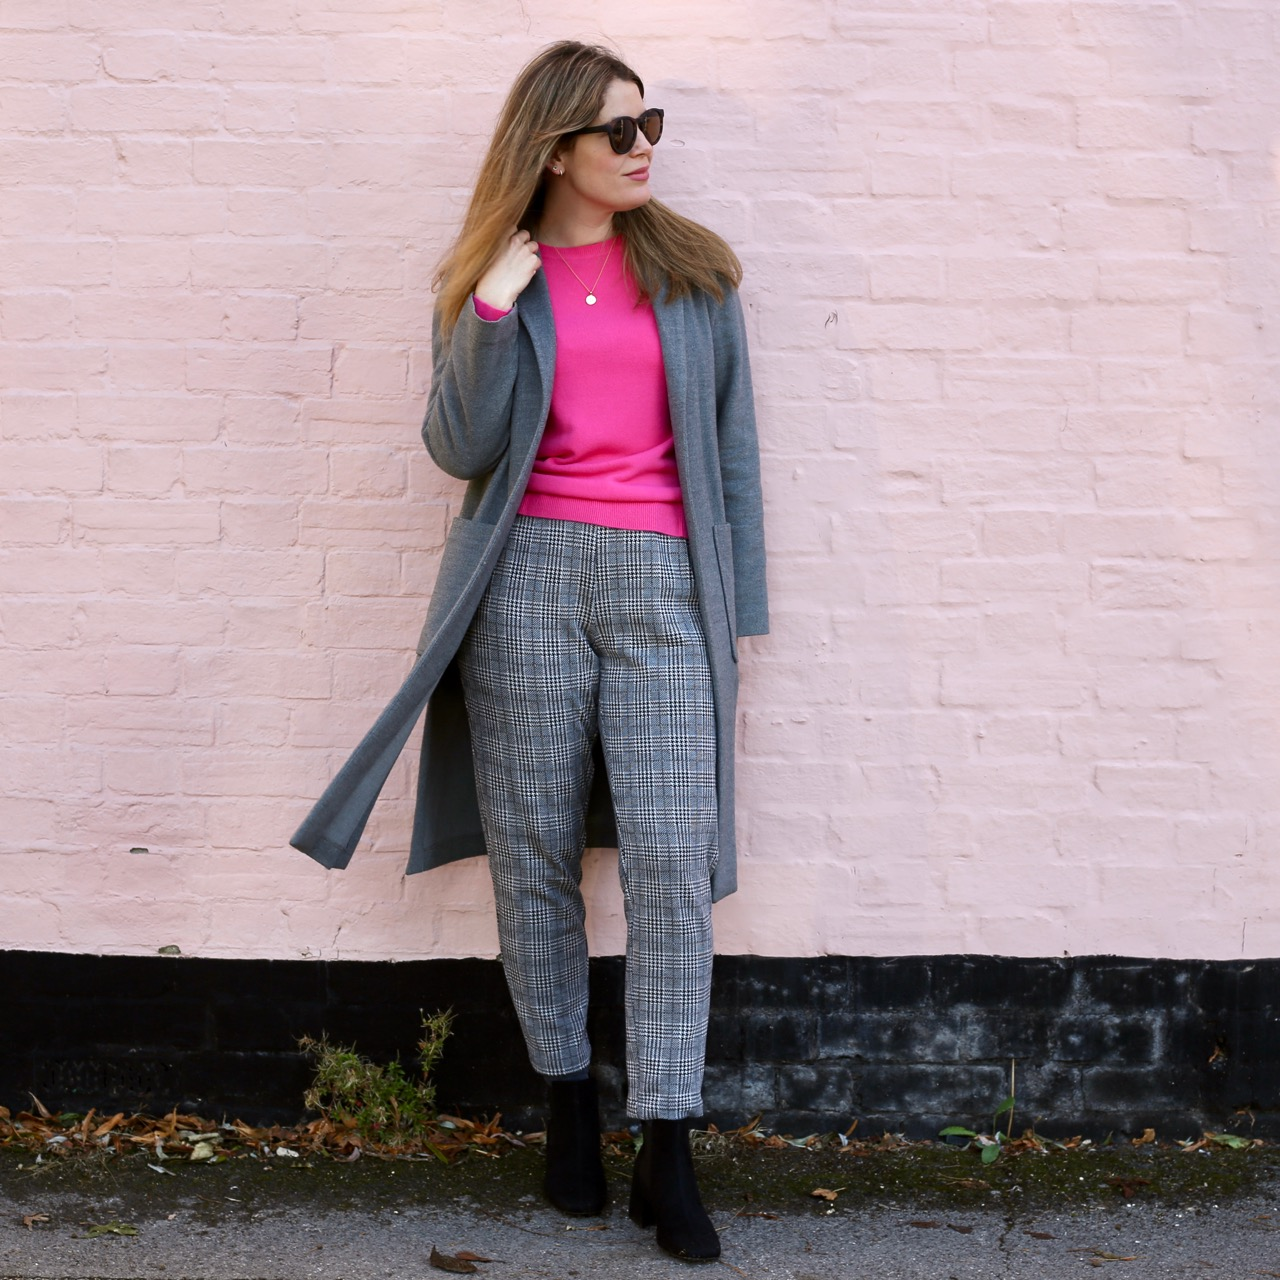 Pink jumper and grey trousers